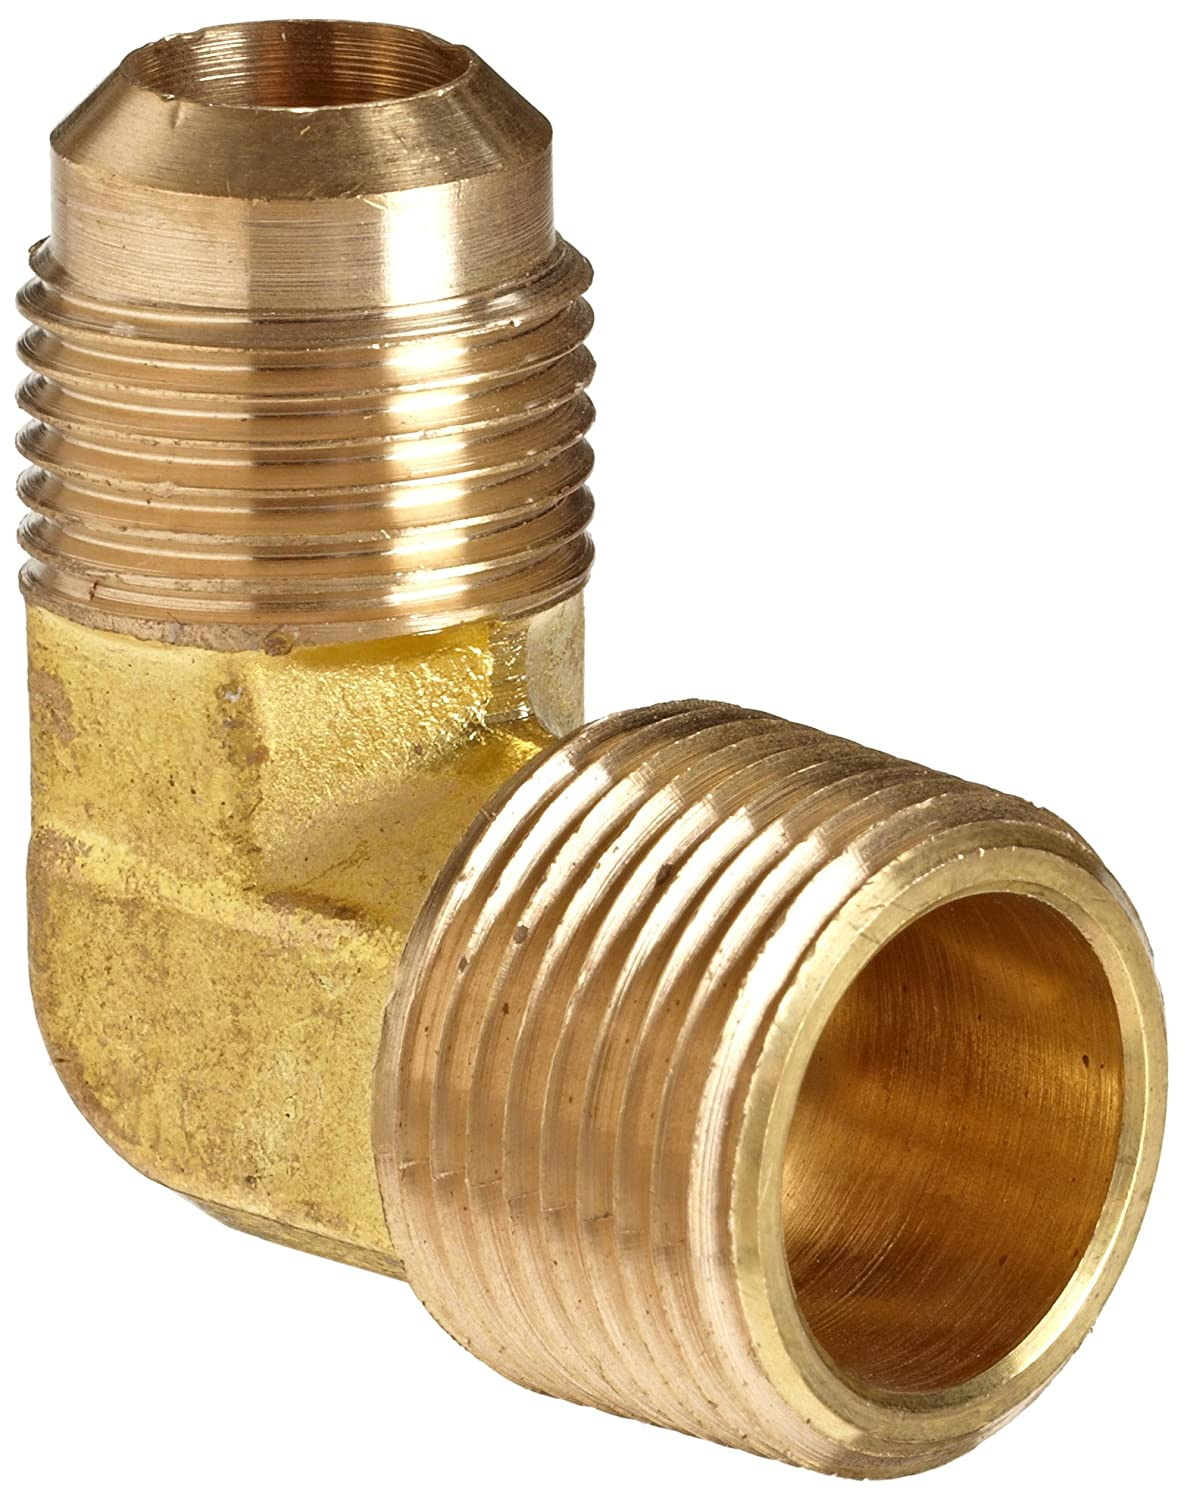 Anderson Metals 04049-1208 Brass Tube 90 Fitting Jacksonville Mall Degree Elbow Popular products